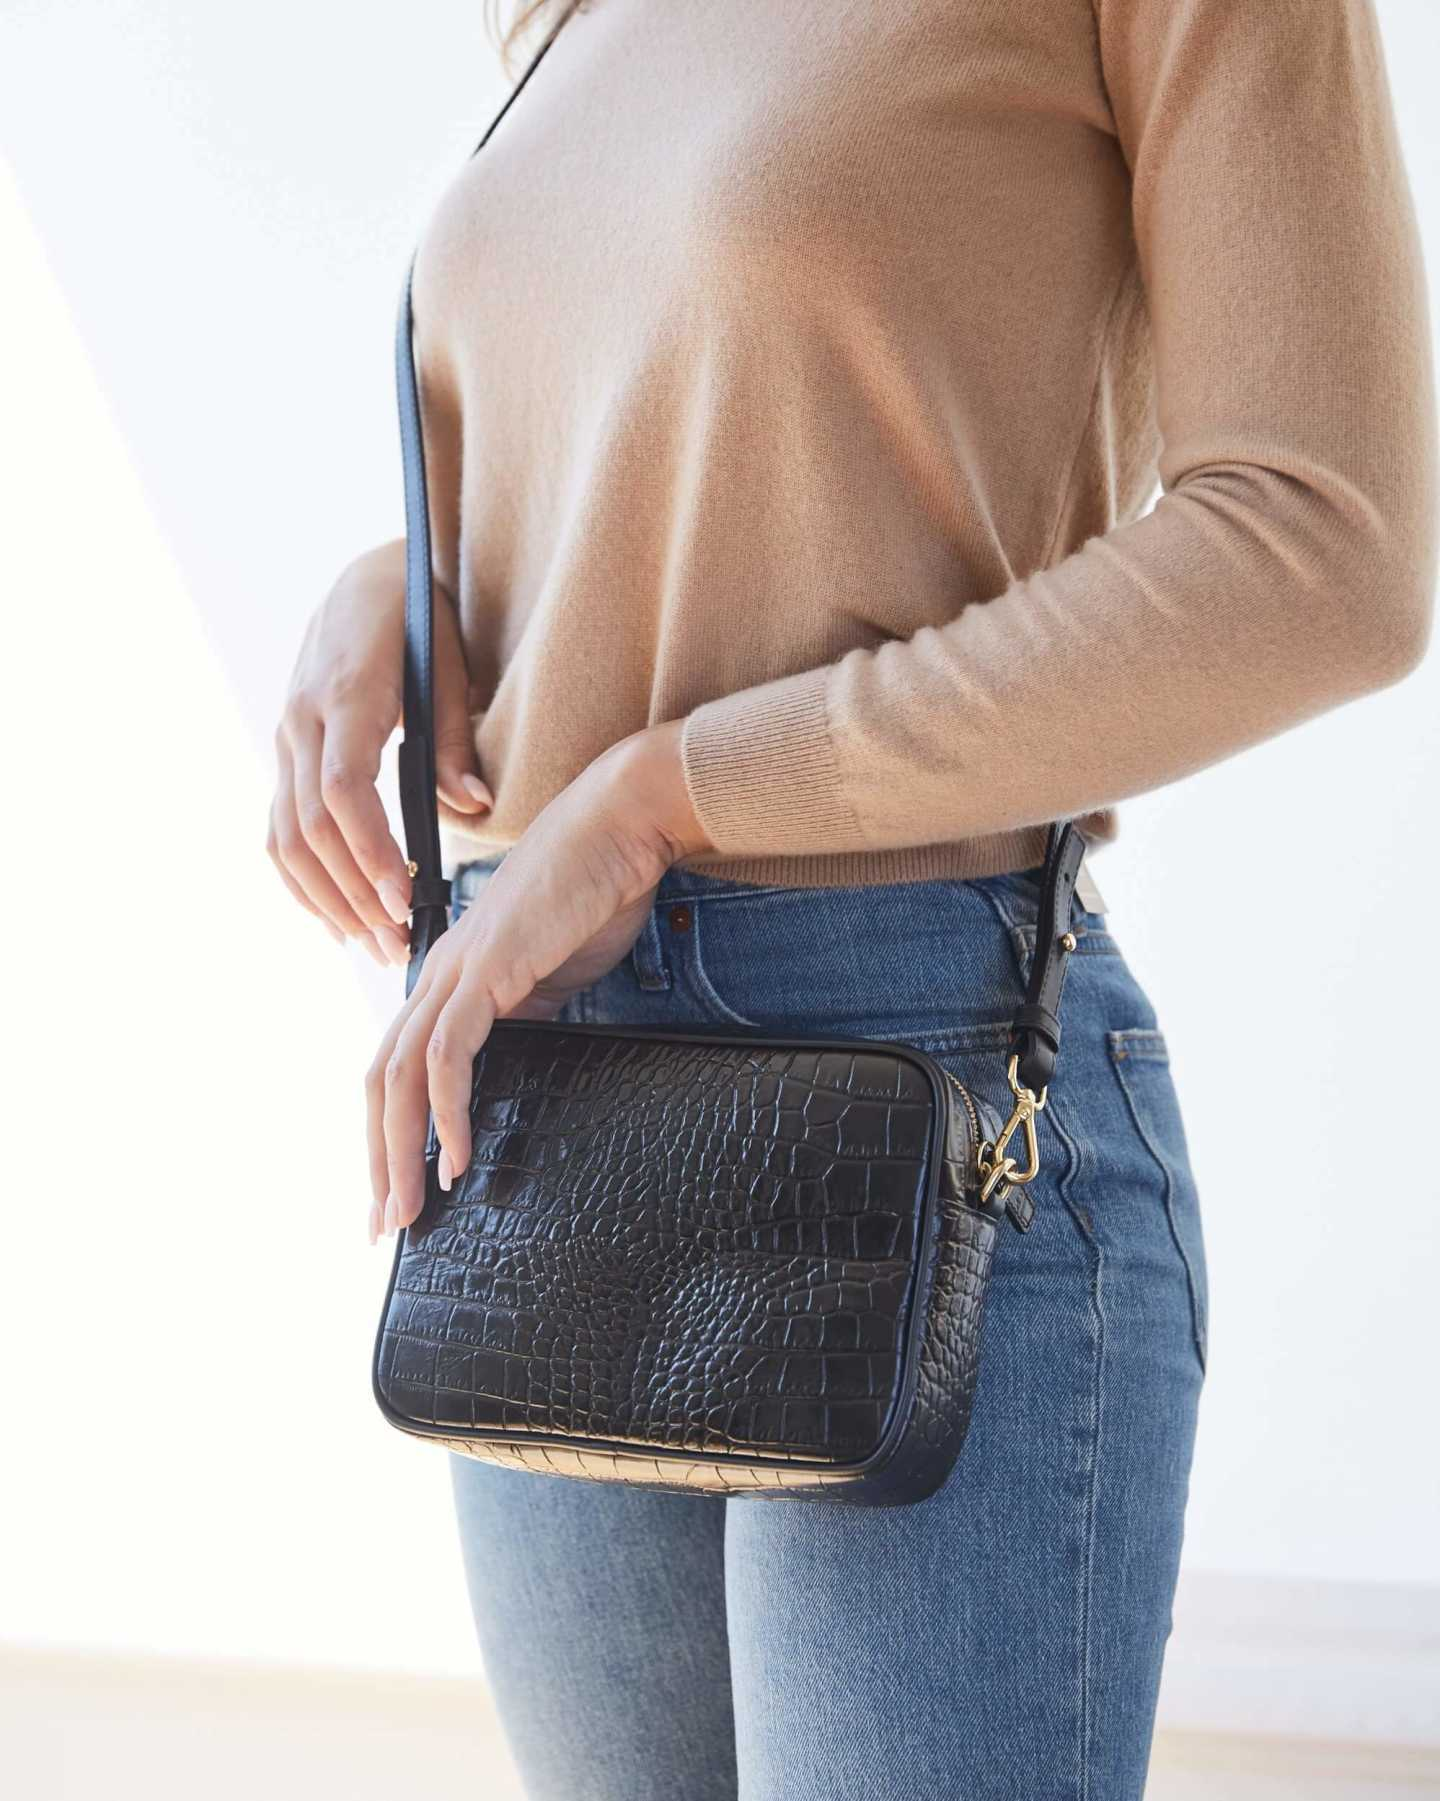 Leather crossbody bag with croco emboss design in front